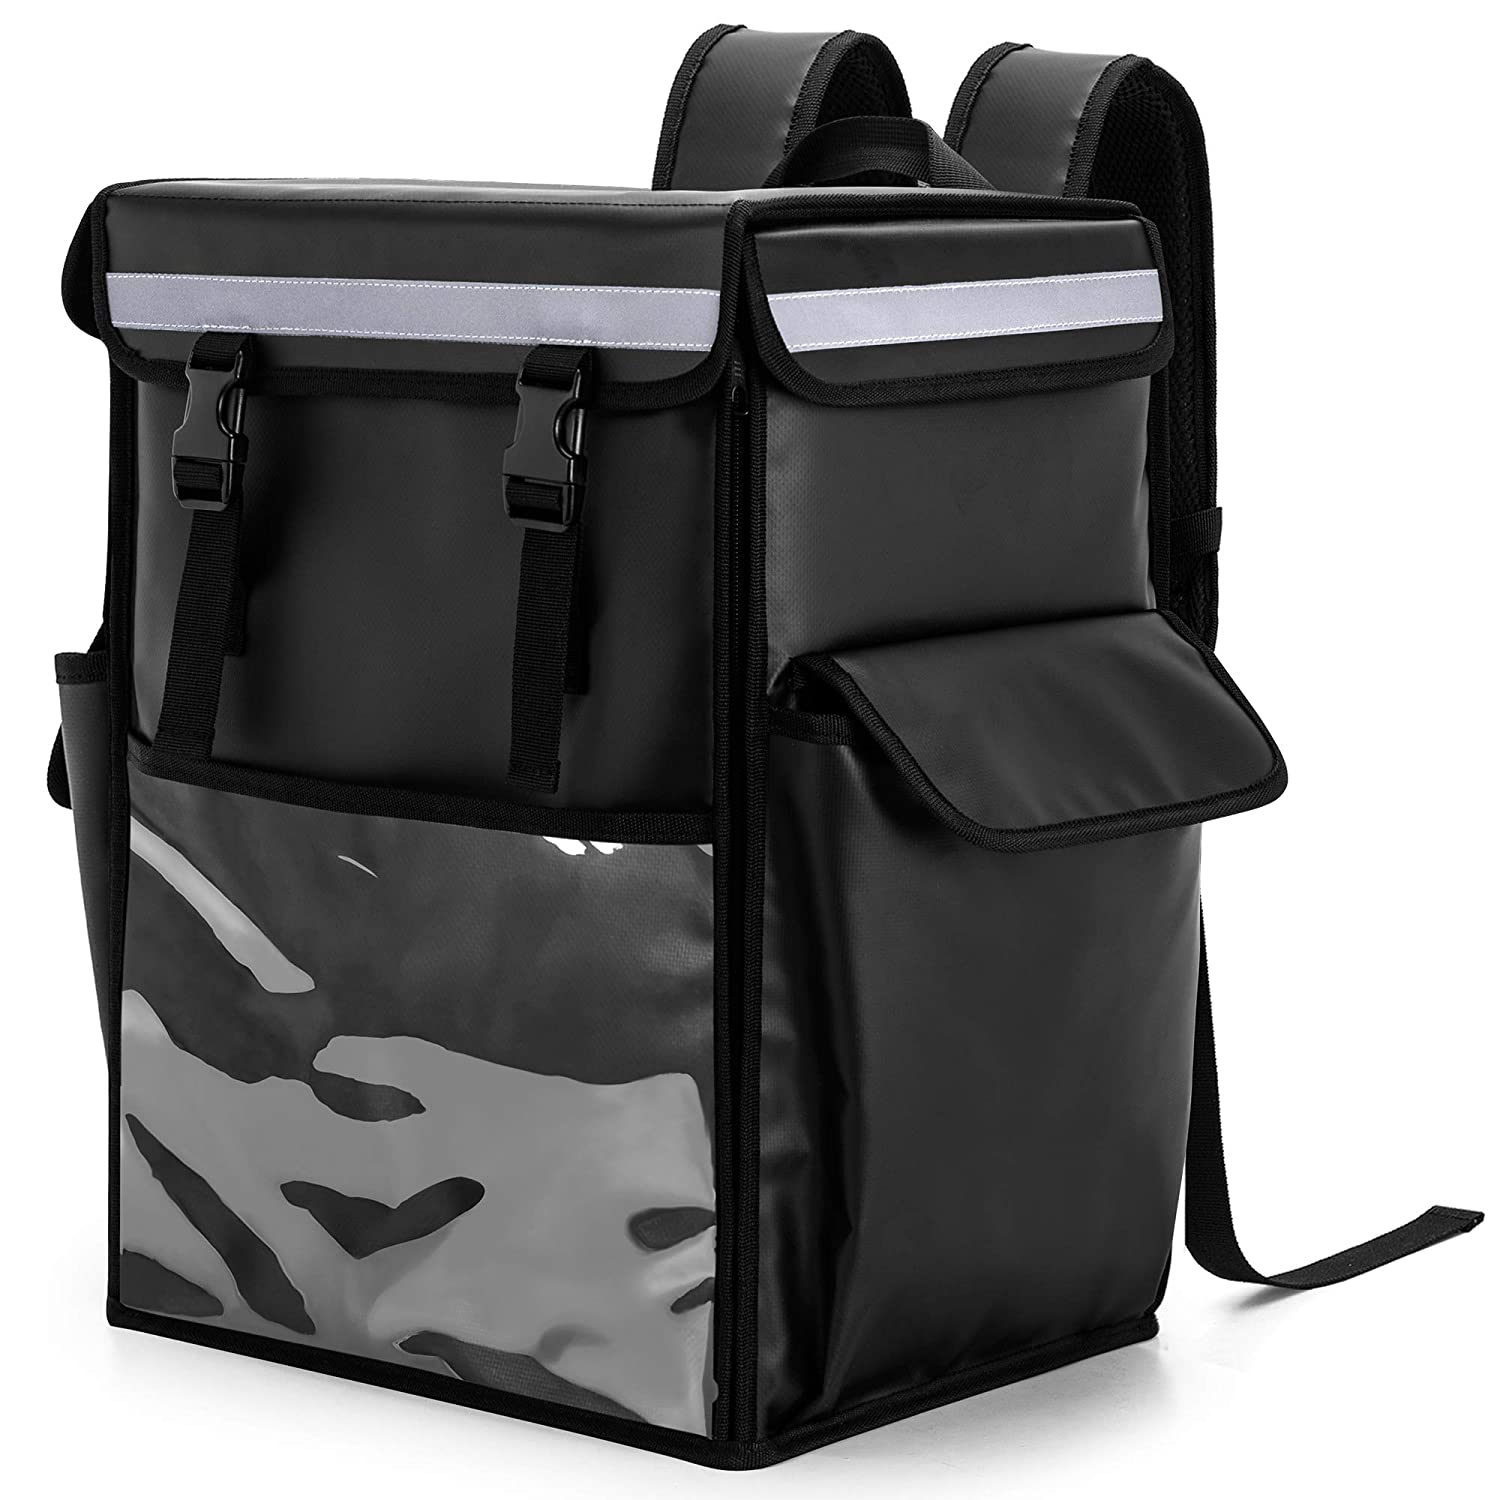 Trunab Insulated Food Delivery Backpack Boar 35% OFF with Limited price 2 Support Side